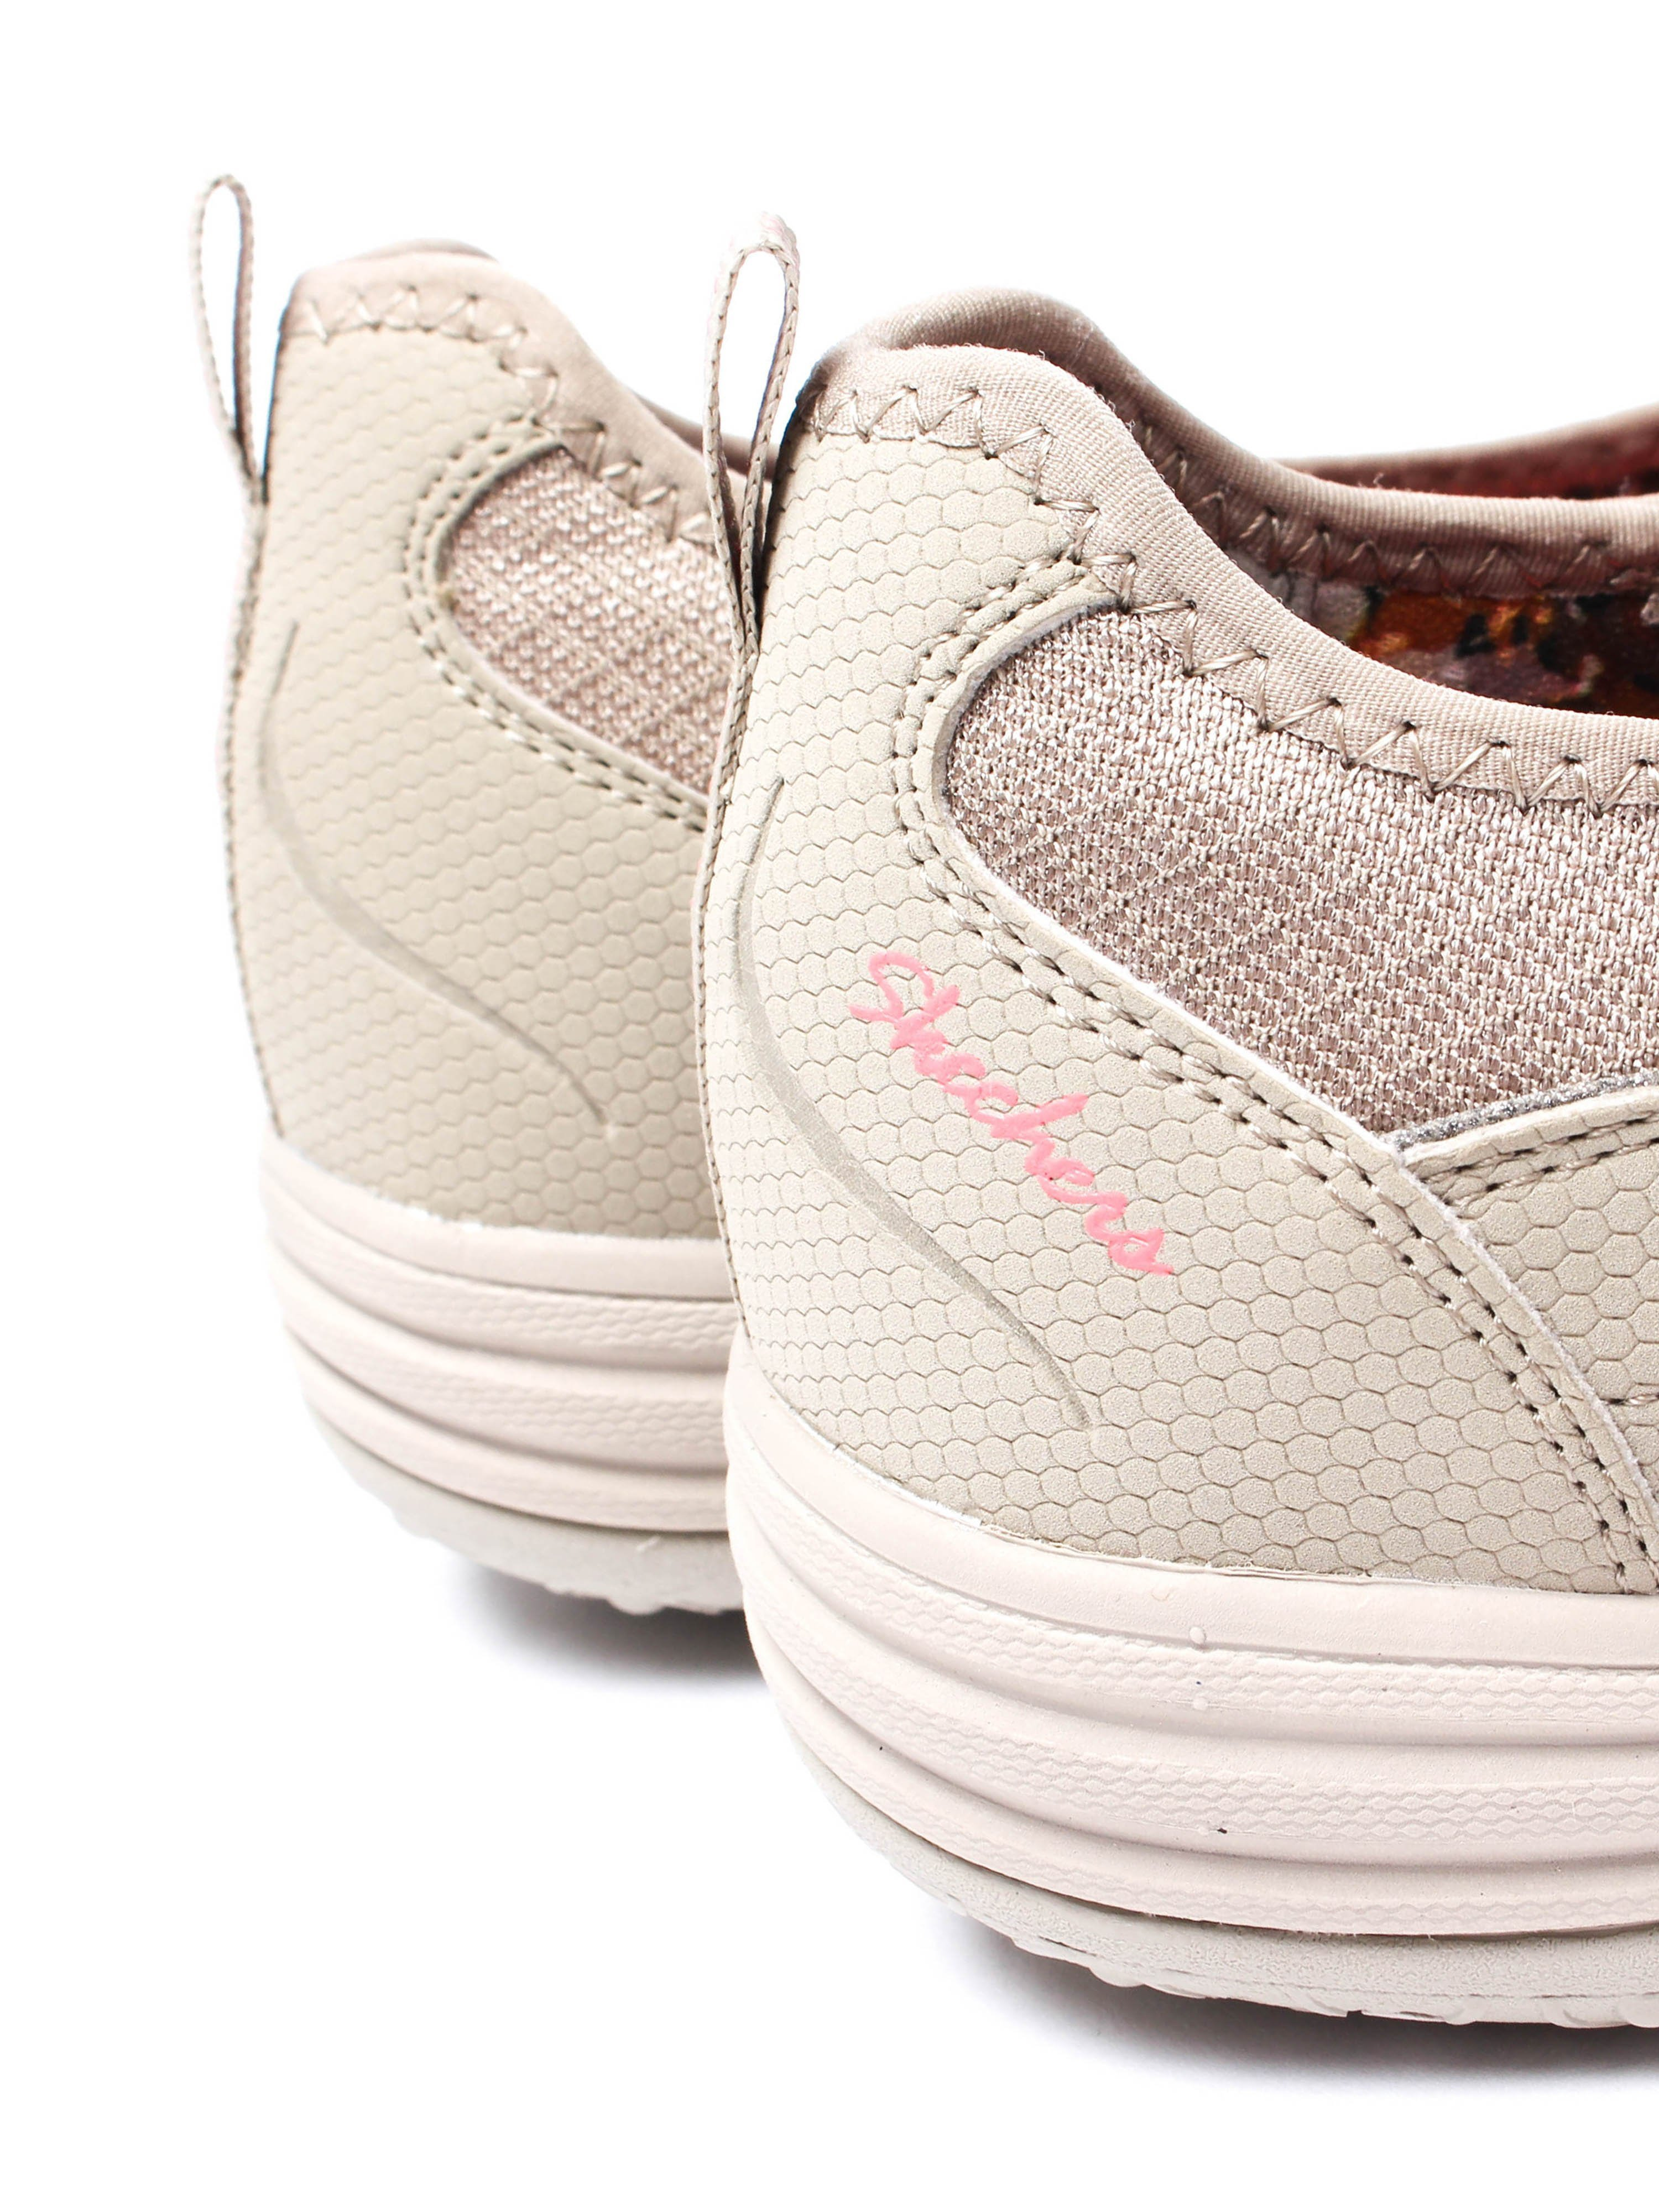 Skechers Women's Unity Go Big Trainers - Taupe